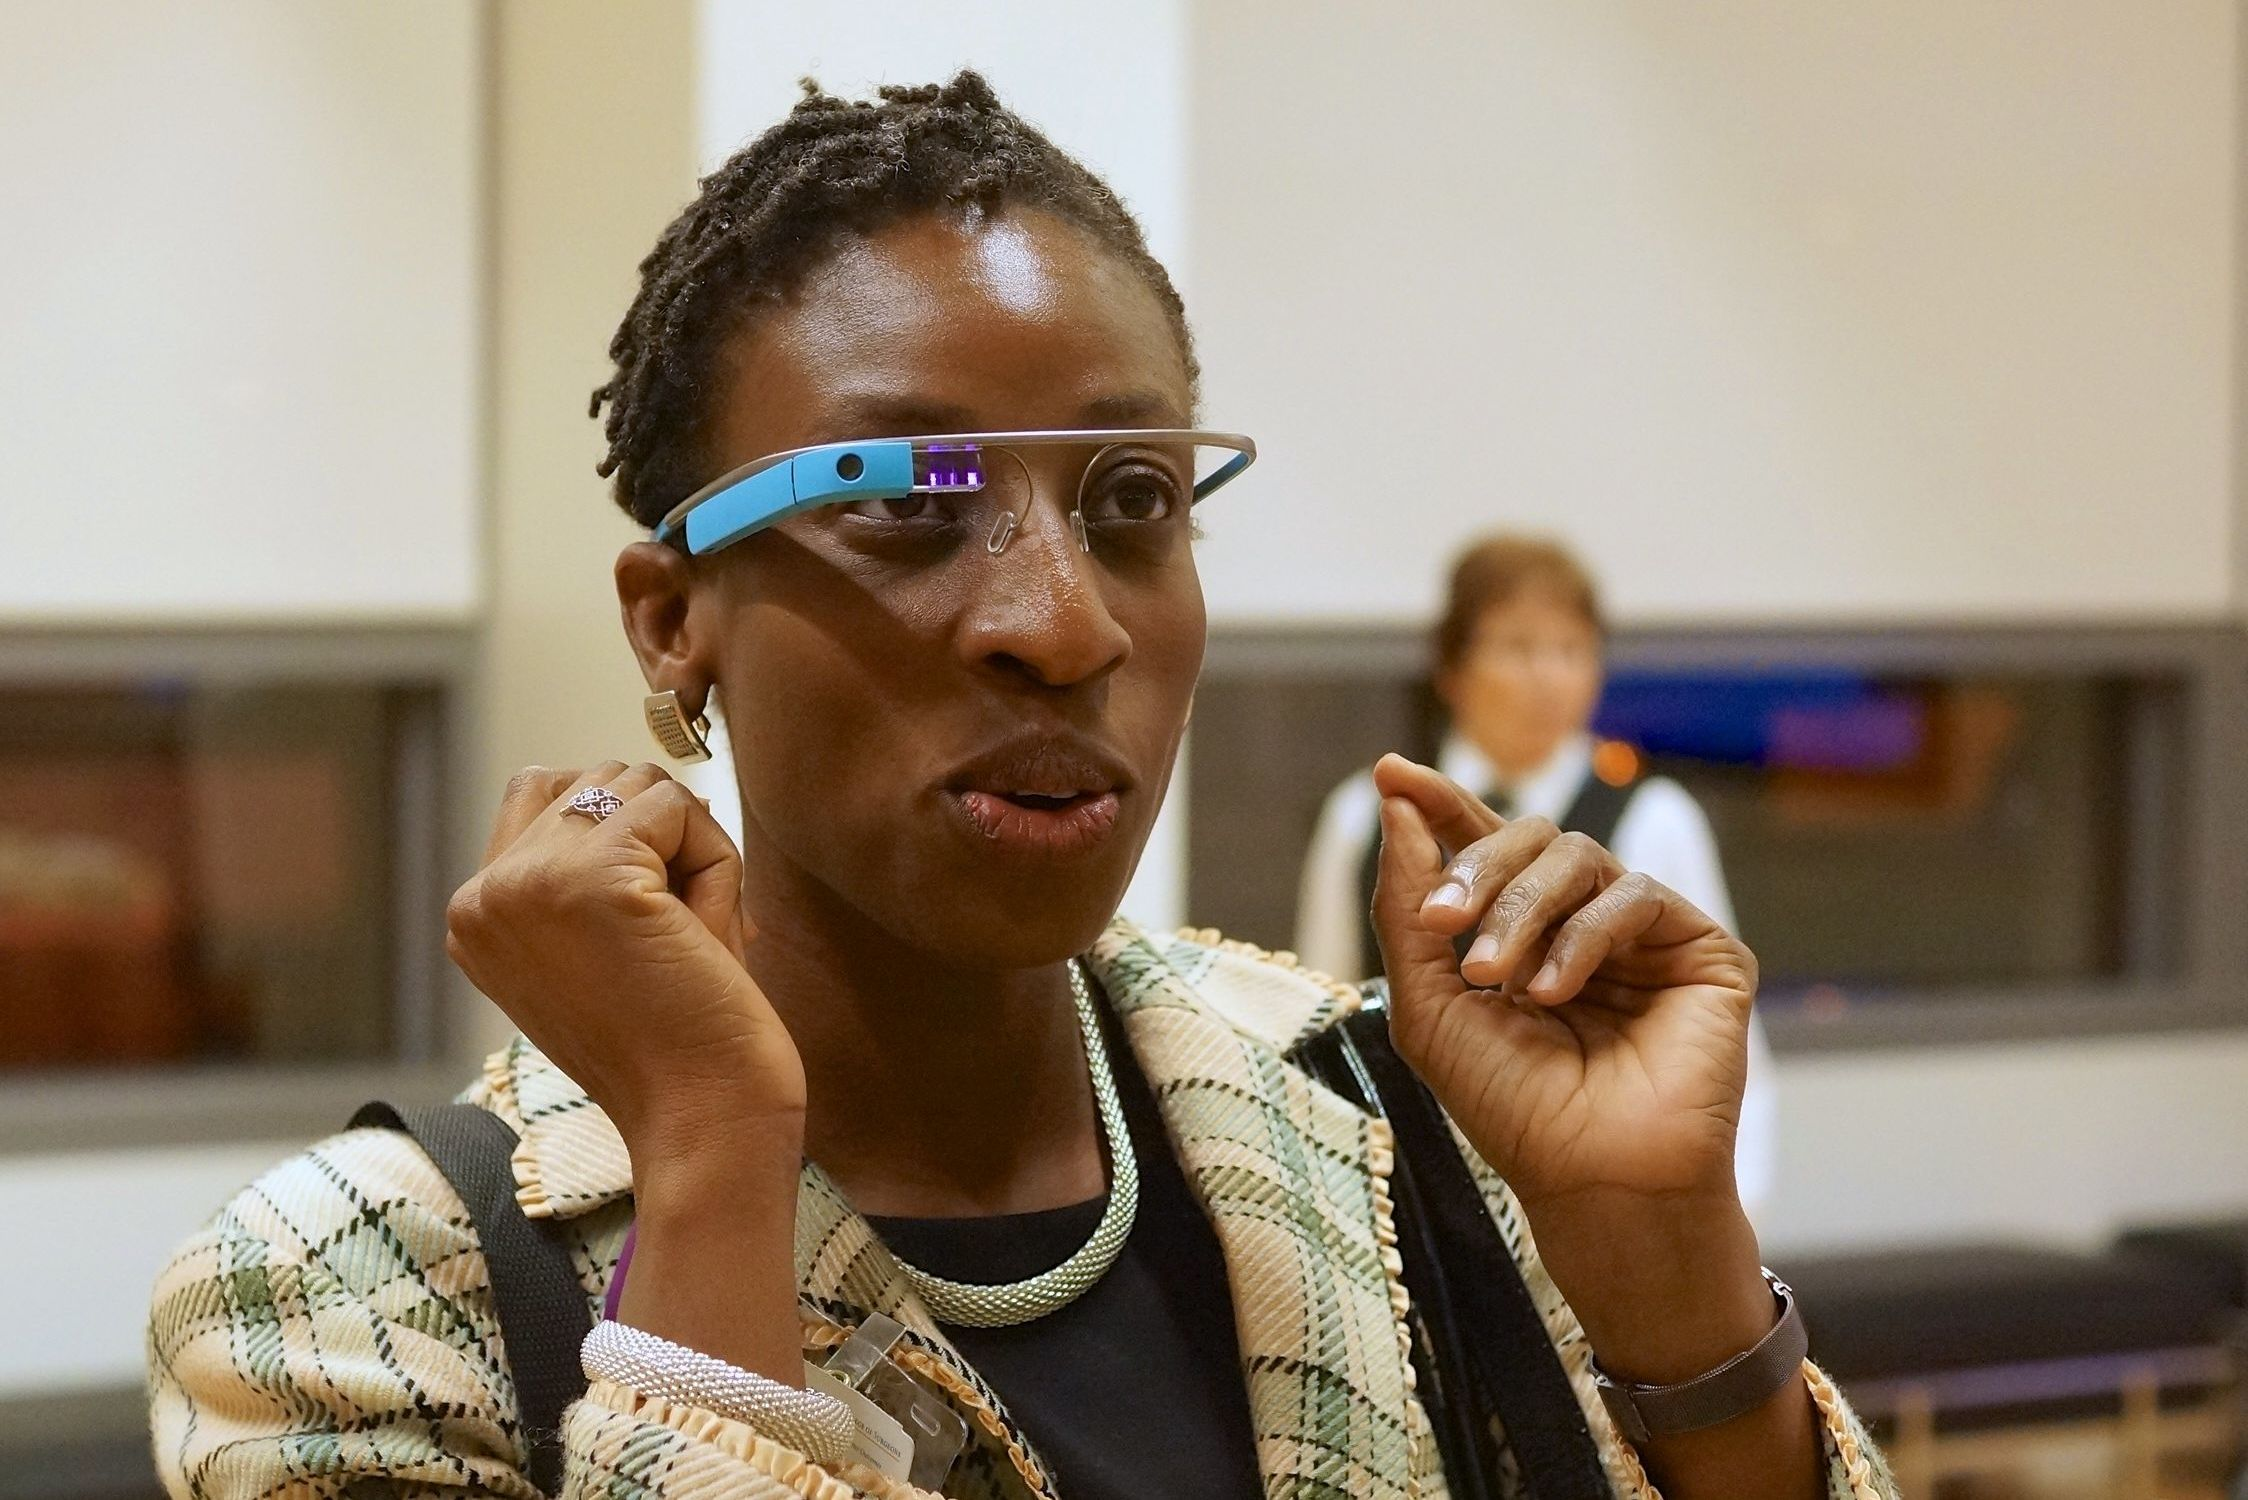 Dr. Tawakalitu Oseni checks out Google Glass at a meeting of the American College of Surgeons in 2013. Oseni is a surgical oncologist at the Naval Medical Center San Diego.